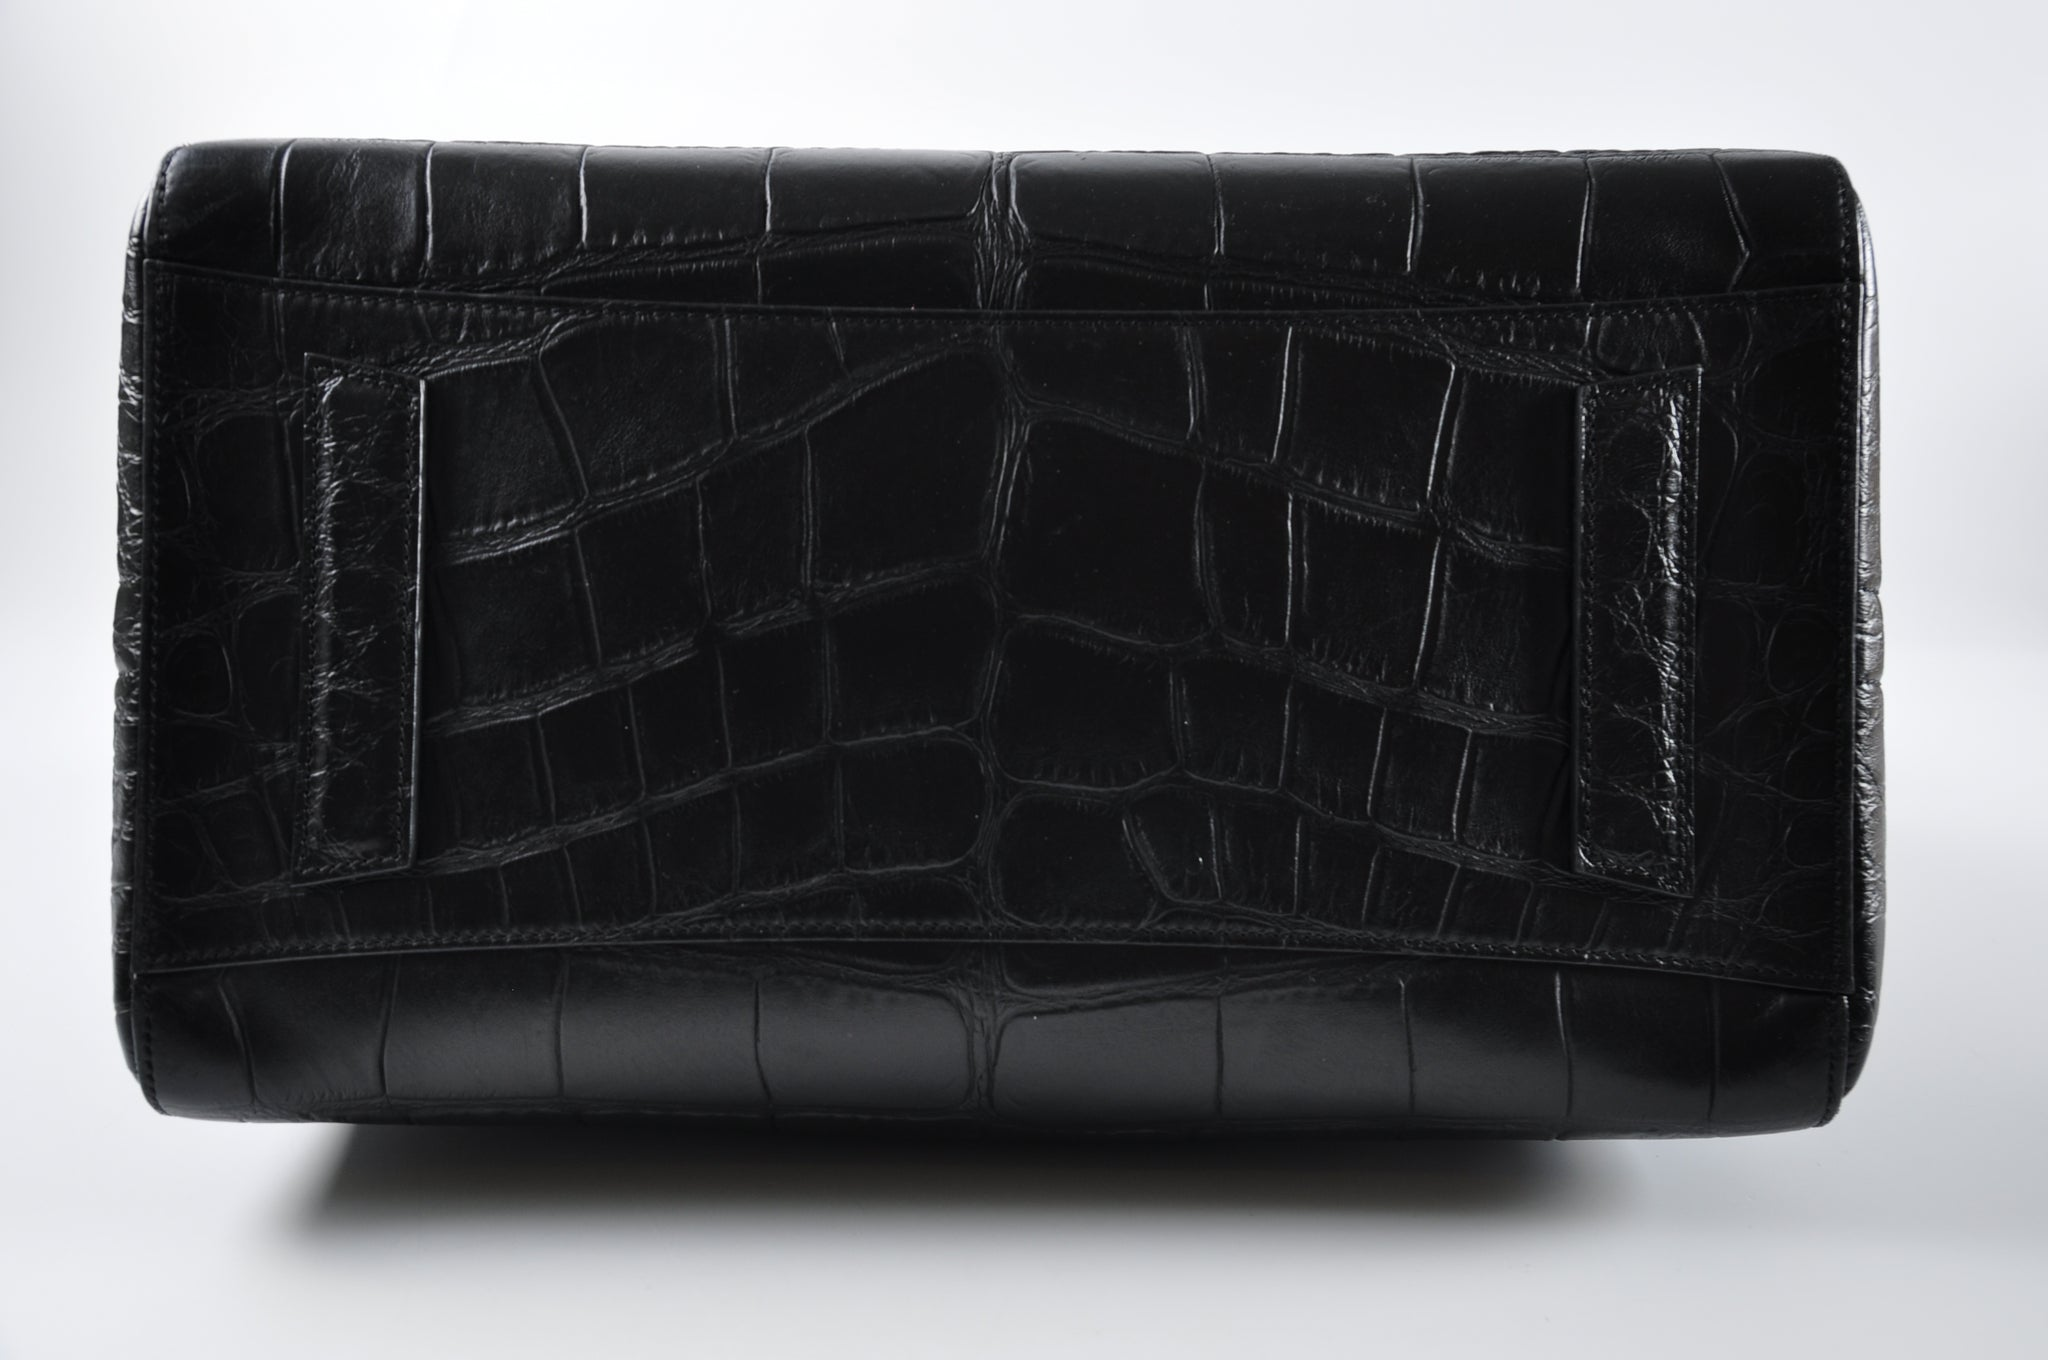 Givenchy Antigona Medium Crocodile Embossed Satchel Bag in Black